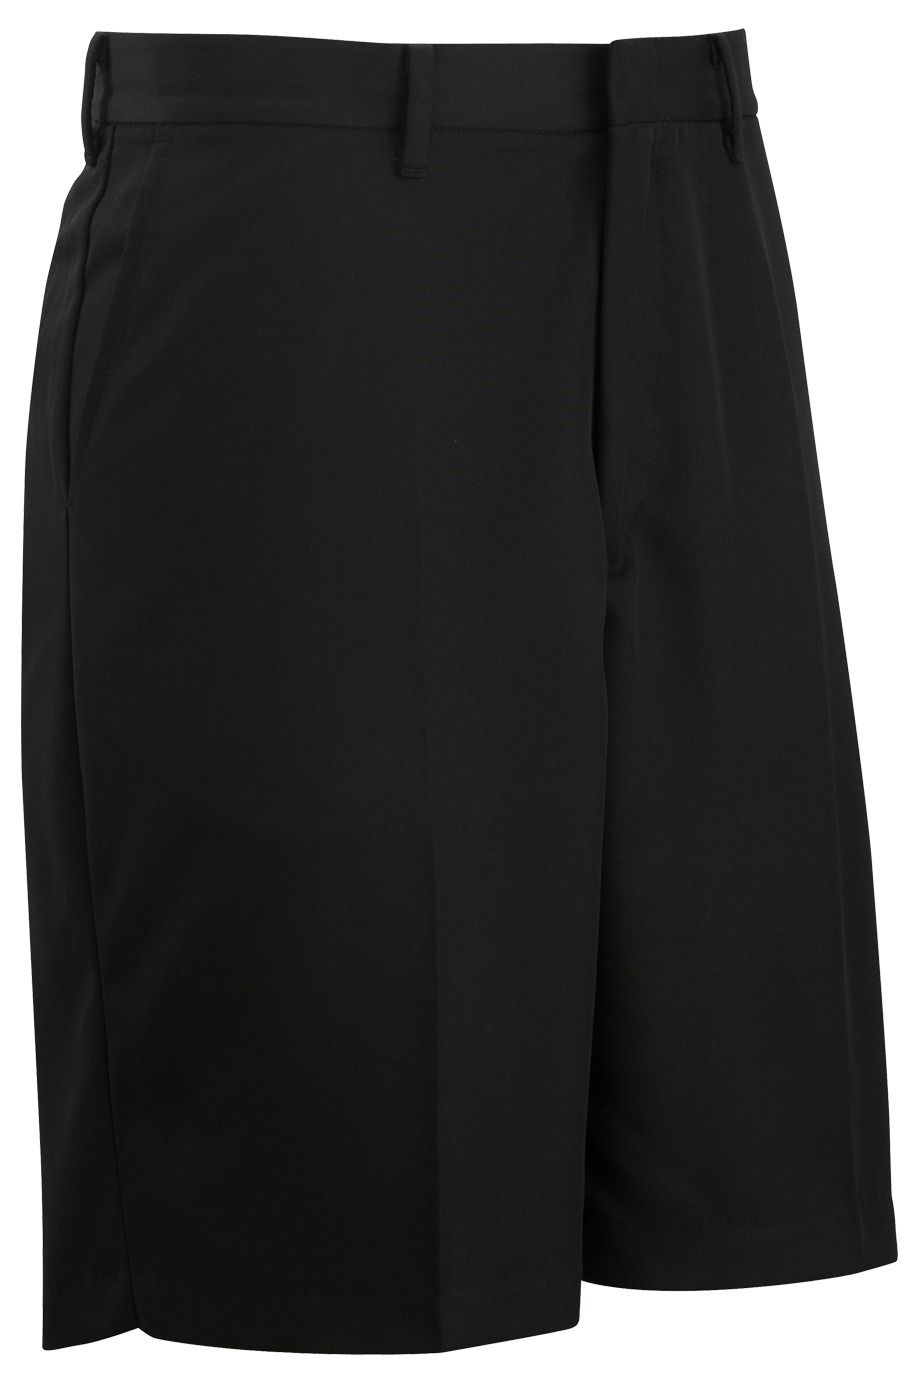 Men's Black Microfiber Flat Front Shorts